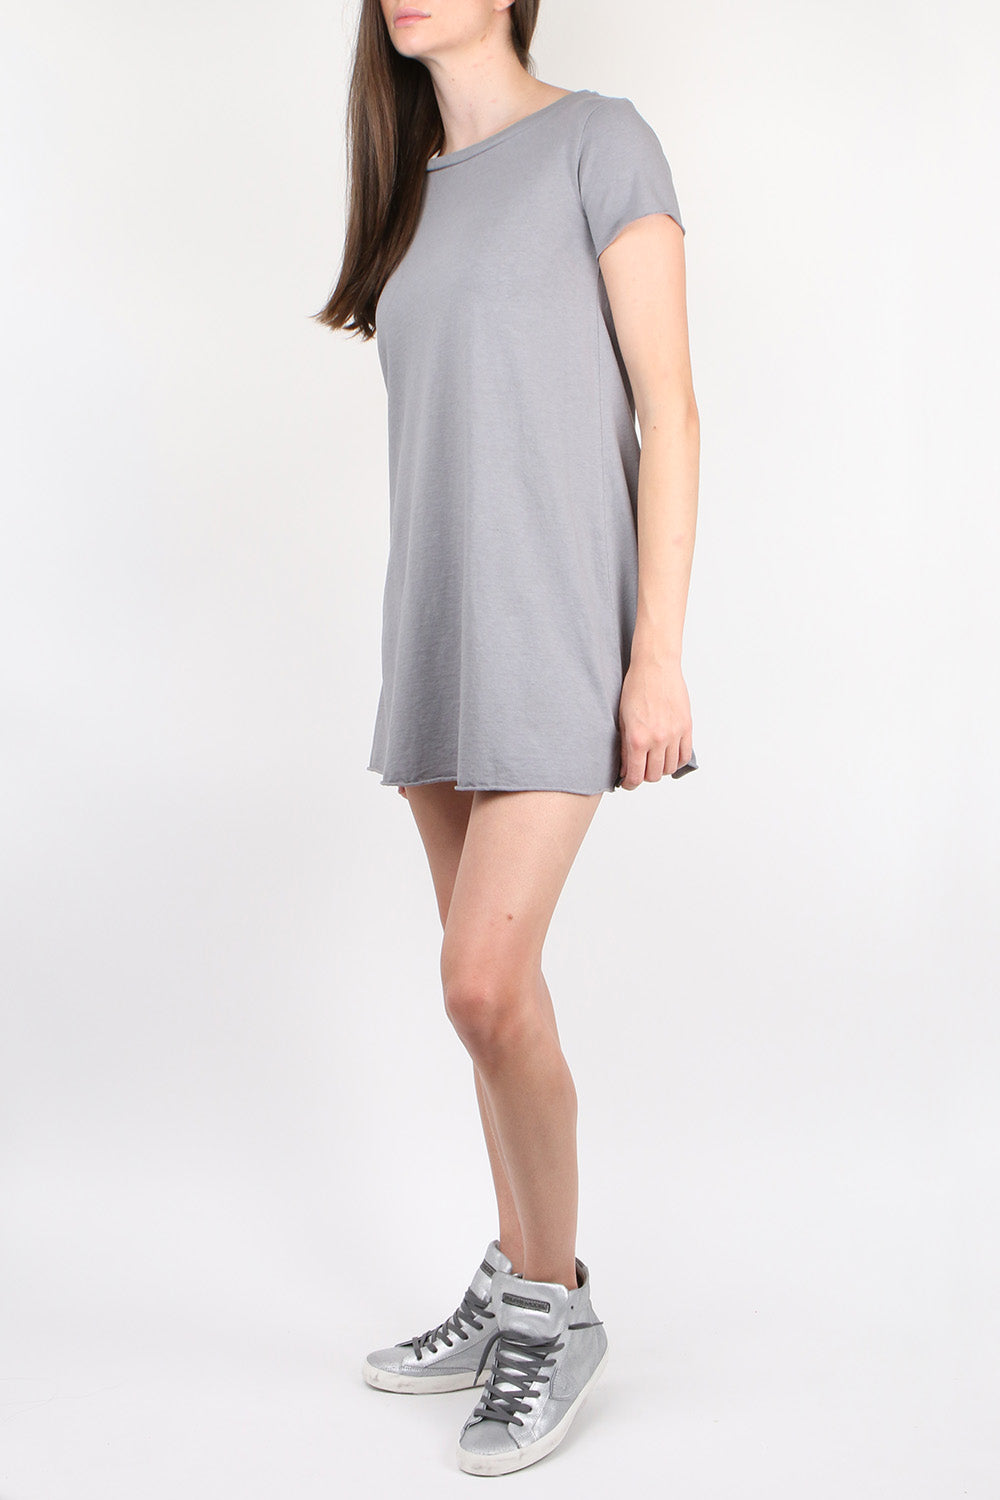 Tee Lab by Frank & Eileen Short Sleeve Tunic in Shadow